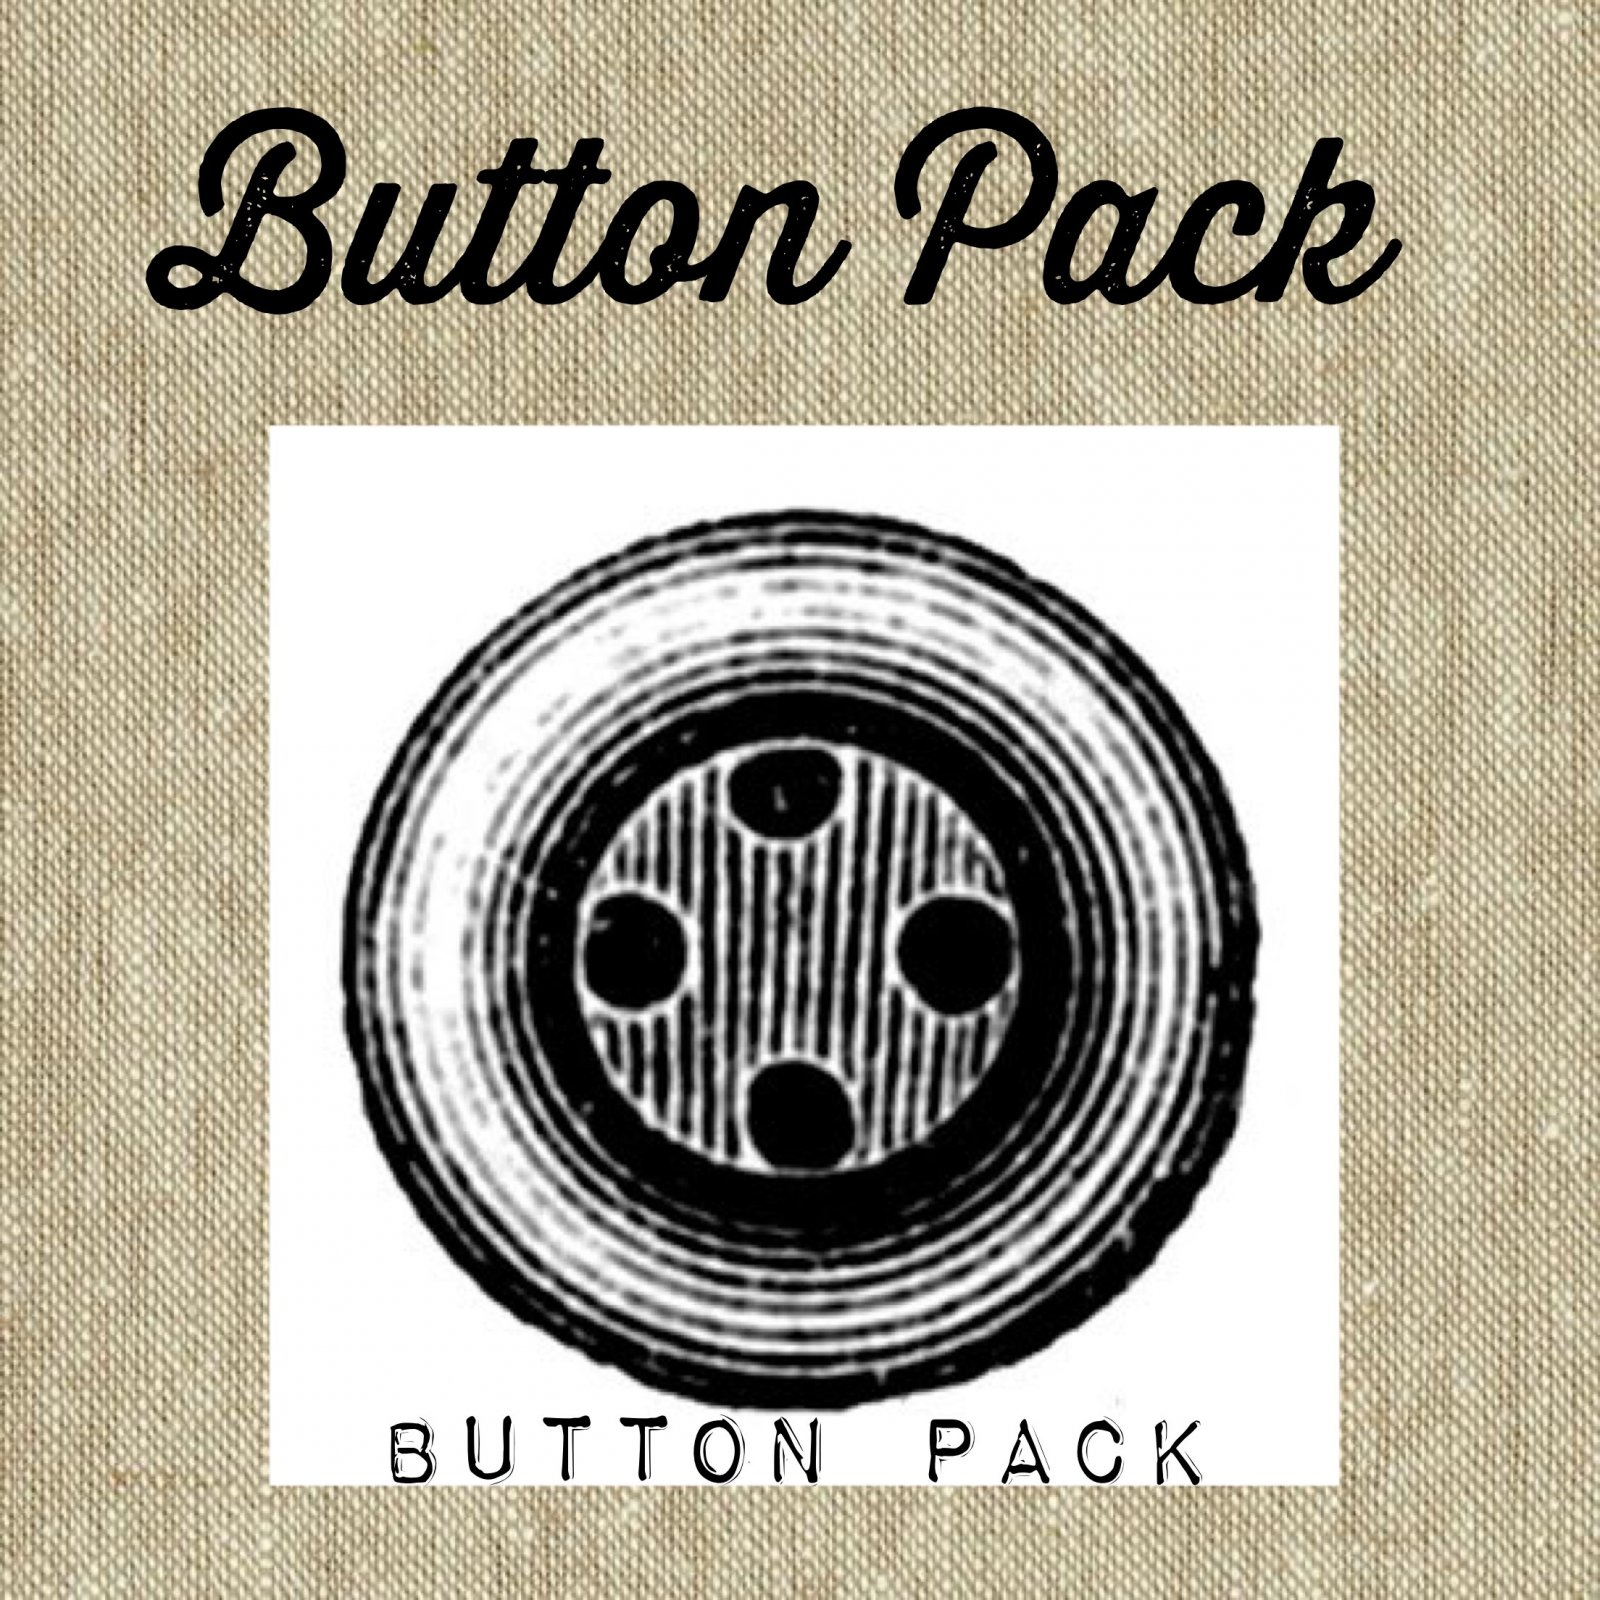 Matilda's Gear *Button Pack